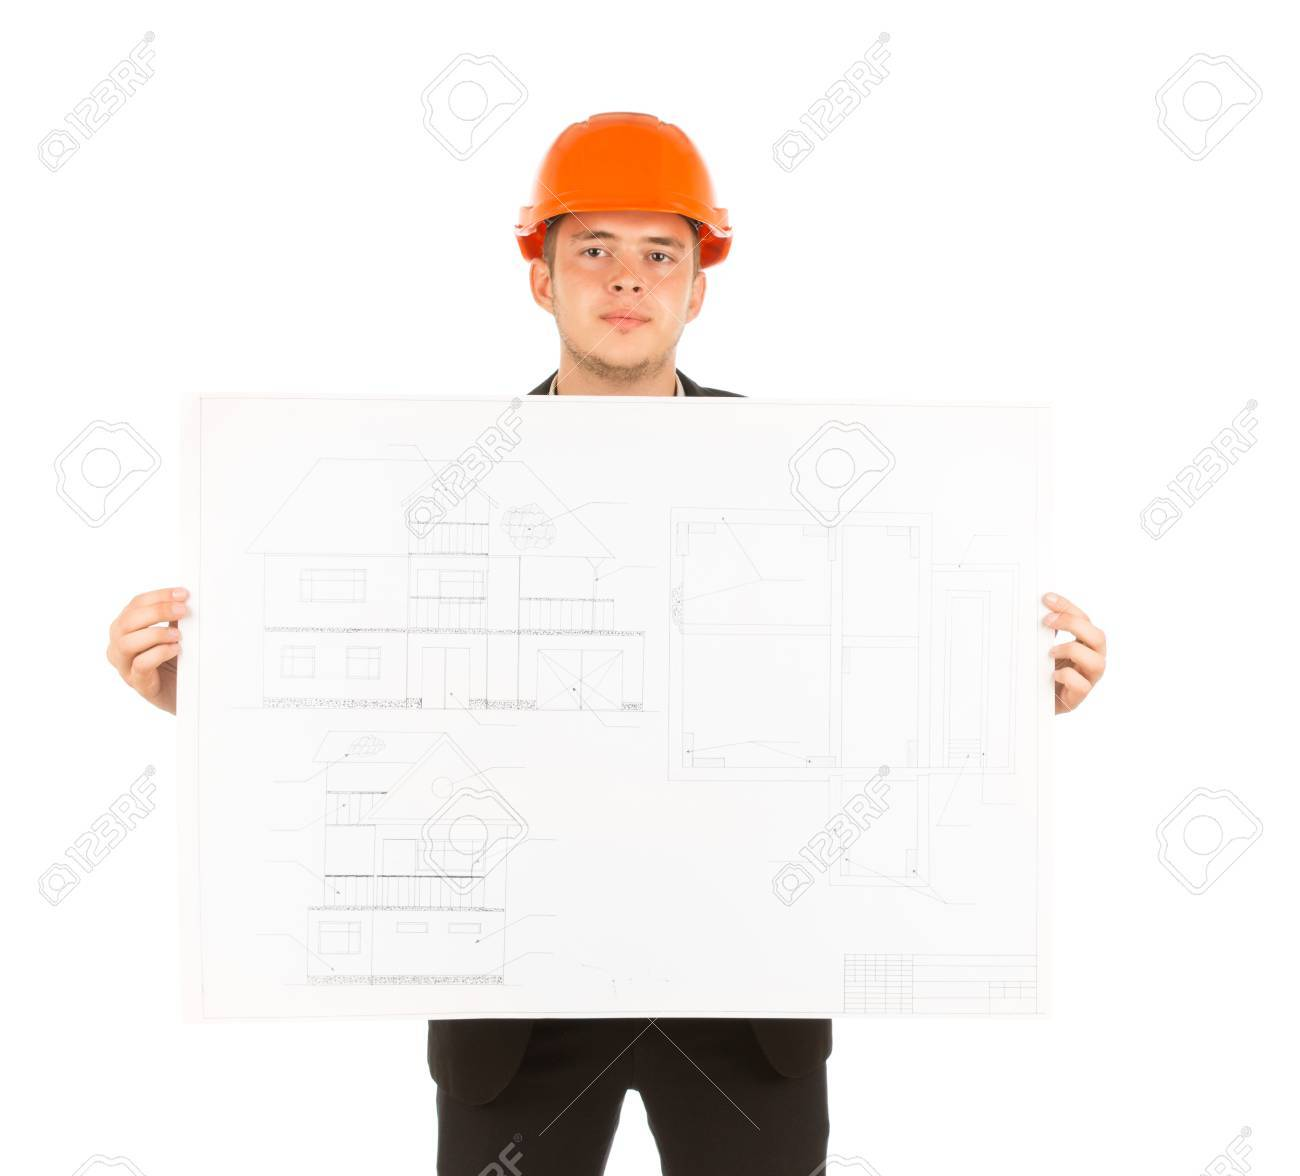 Close up young male engineer in orange head protector showing close up young male engineer in orange head protector showing building blueprint design while looking at malvernweather Choice Image